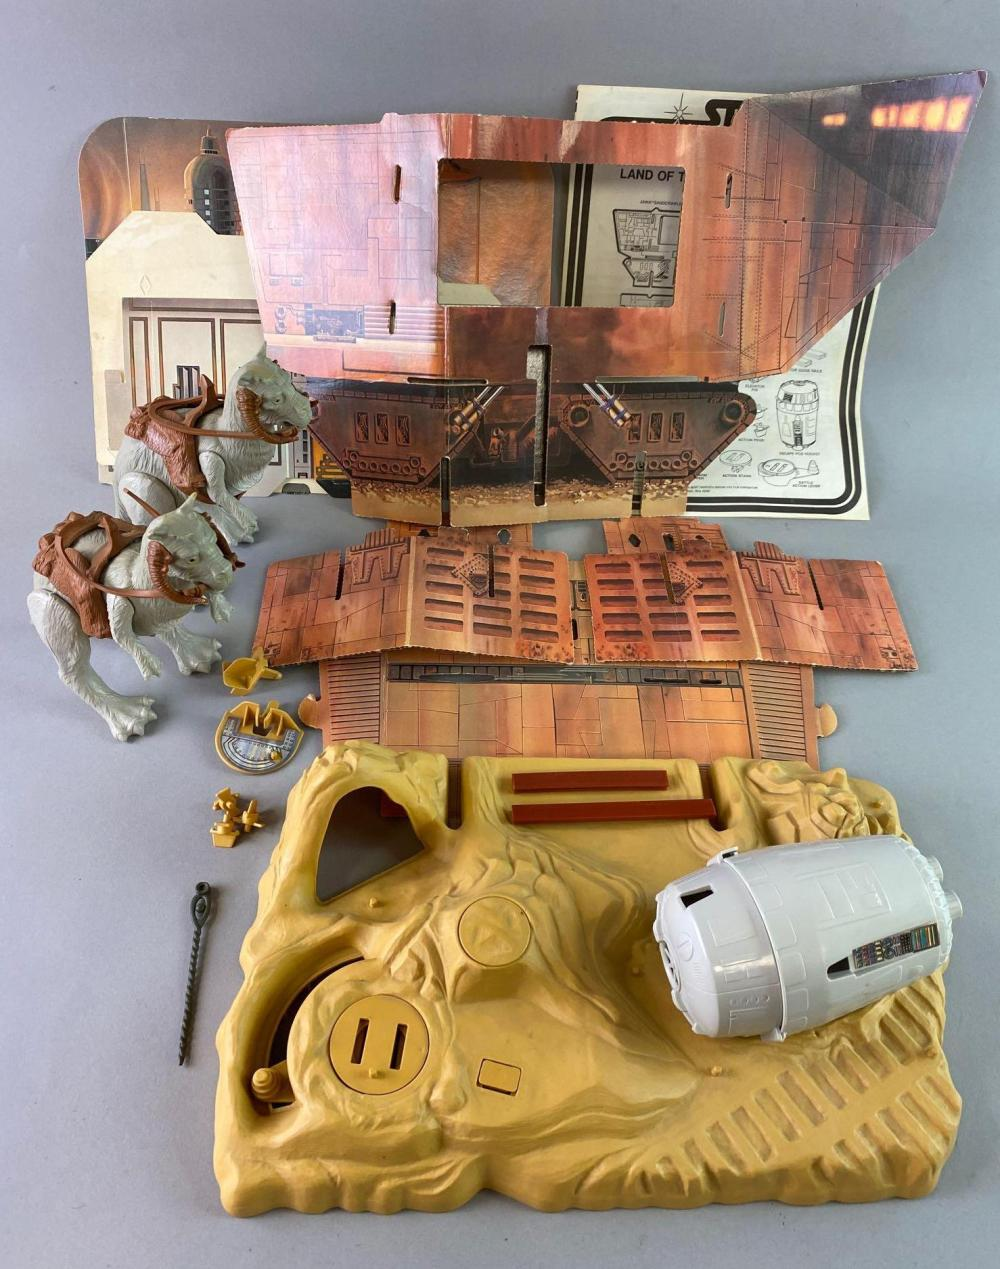 Group of Kenner Star Wars Land of the Jawas Playset